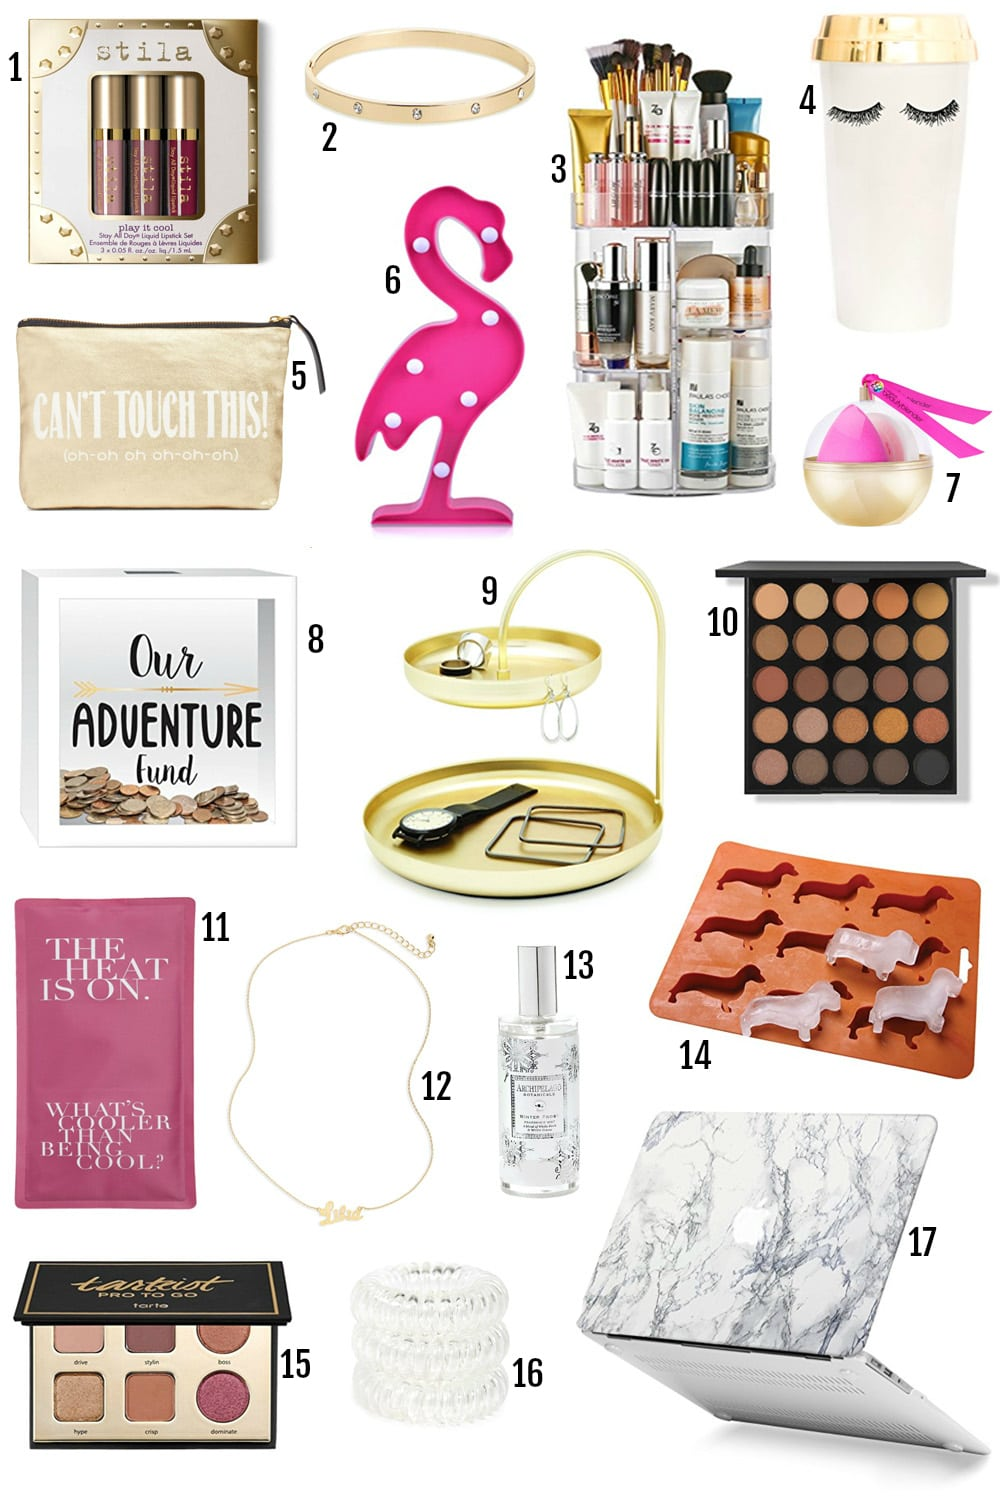 The BEST Gifts For Her Under $25 by popular Orlando style blogger Mash Elle | gifts for the girl who loves travel | gifts for girls in college or university | gifts for girls in sororities